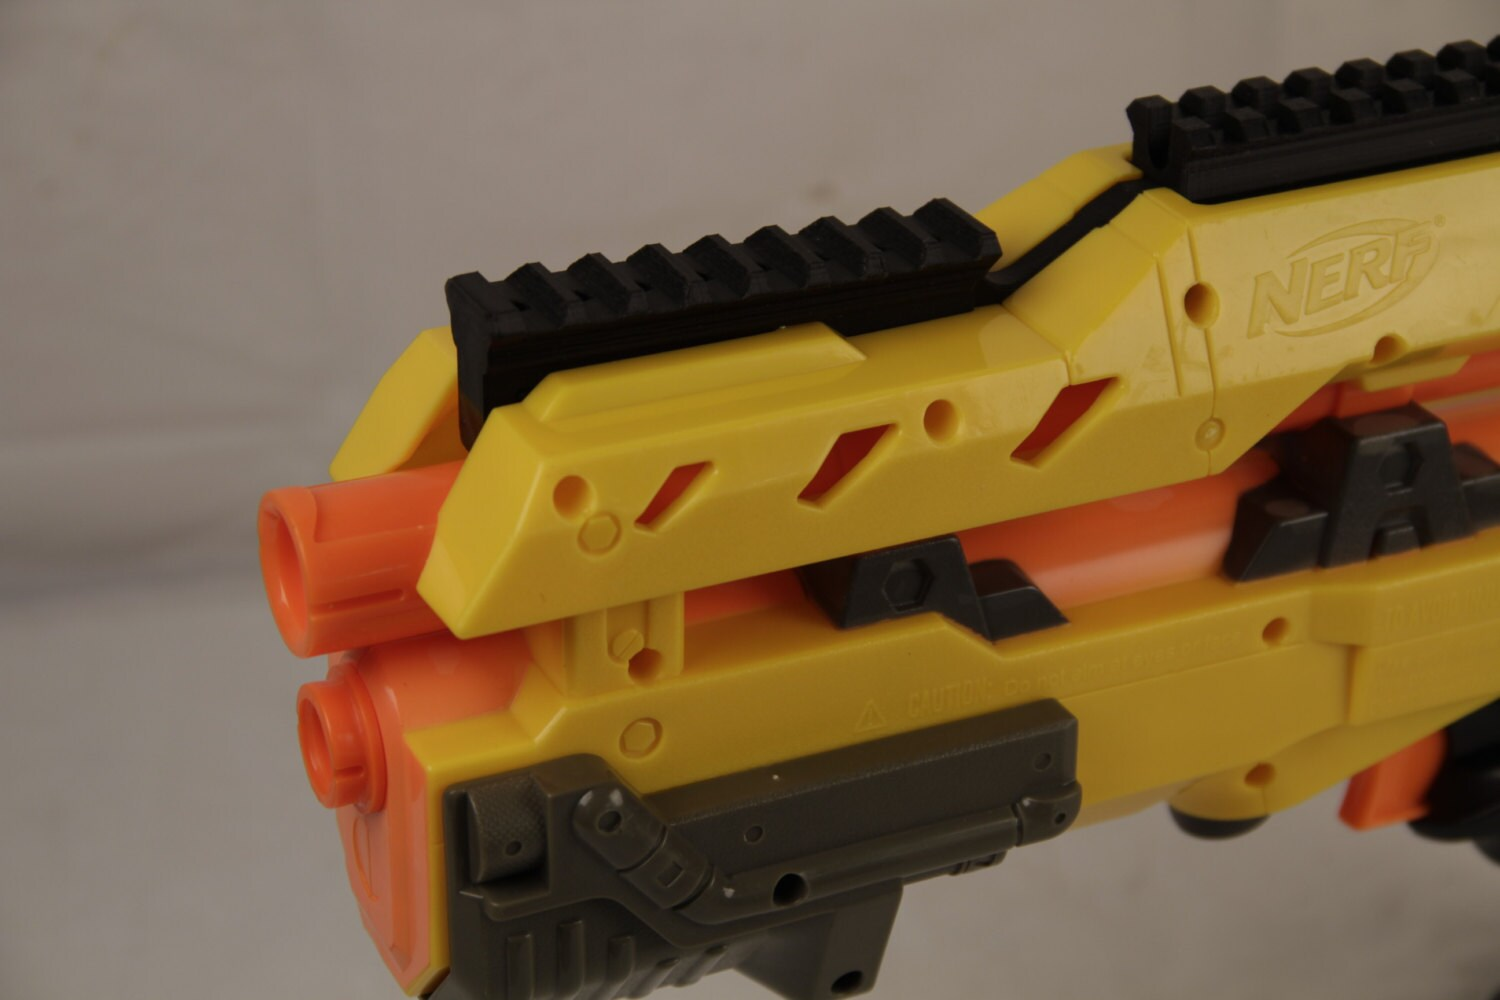 3D Printed Picatinny Front Sight Replacement for Nerf